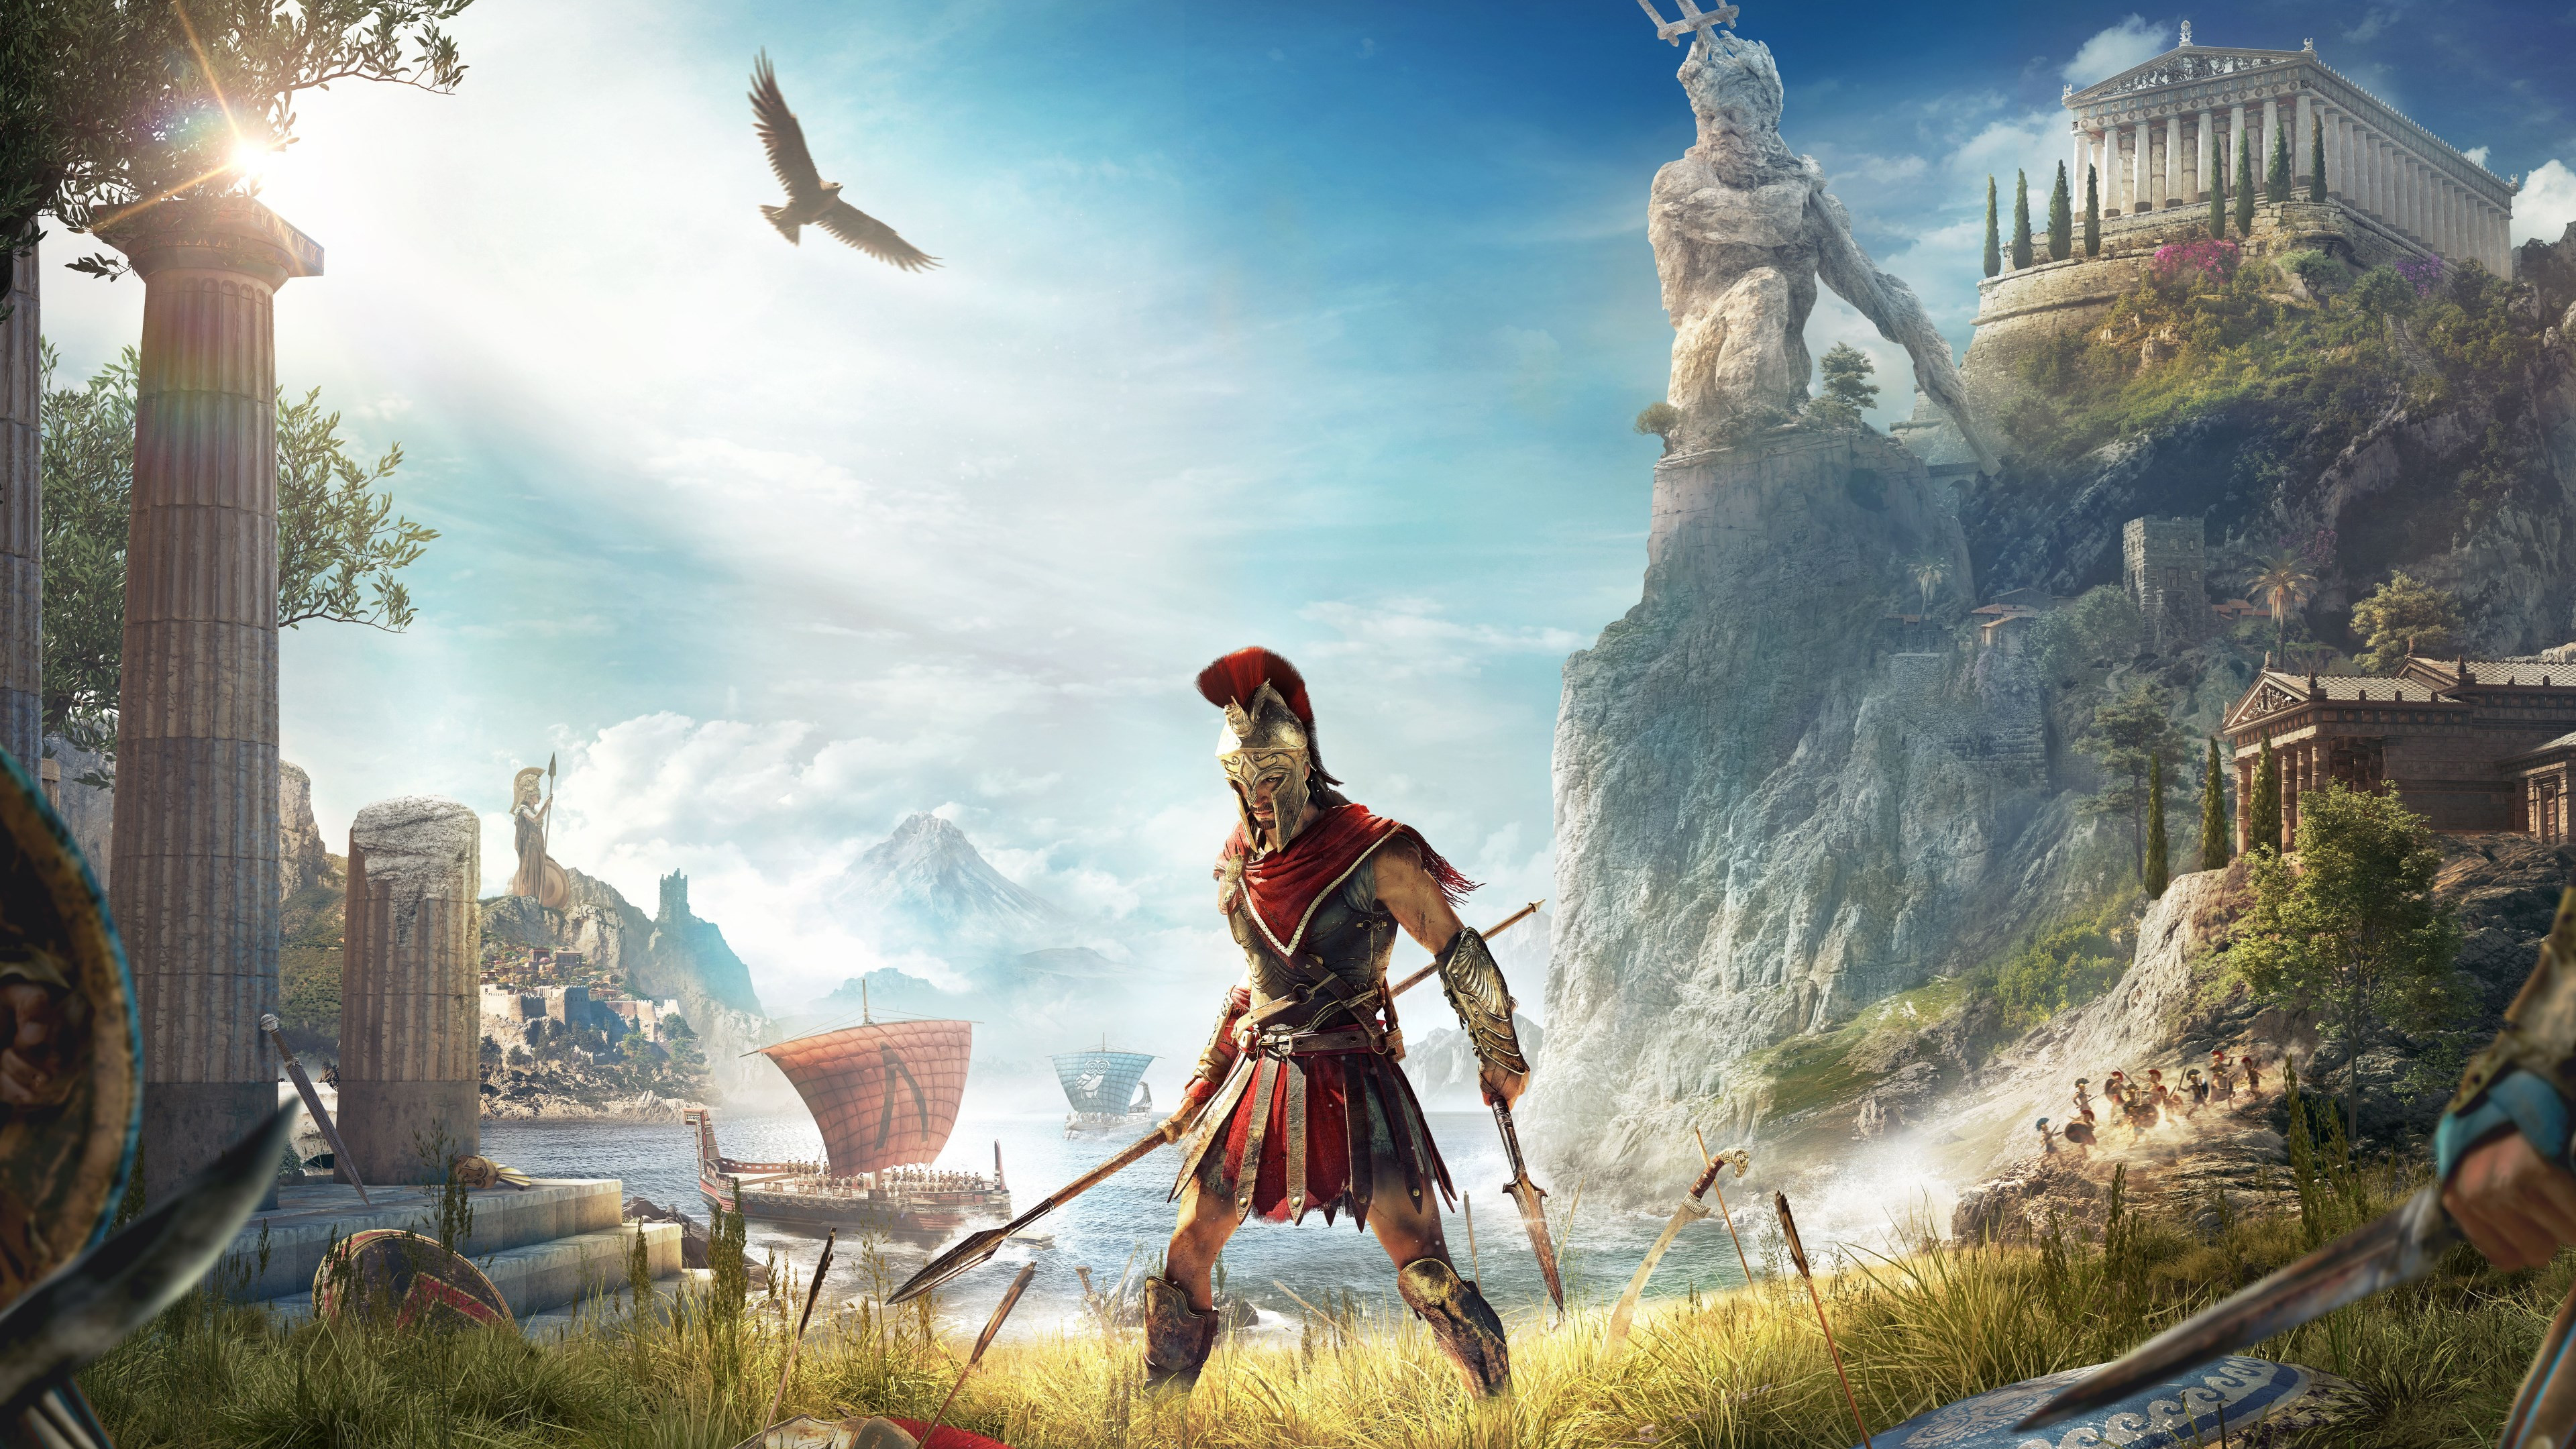 Assassin's Creed Odyssey wallpaper 3840x2160